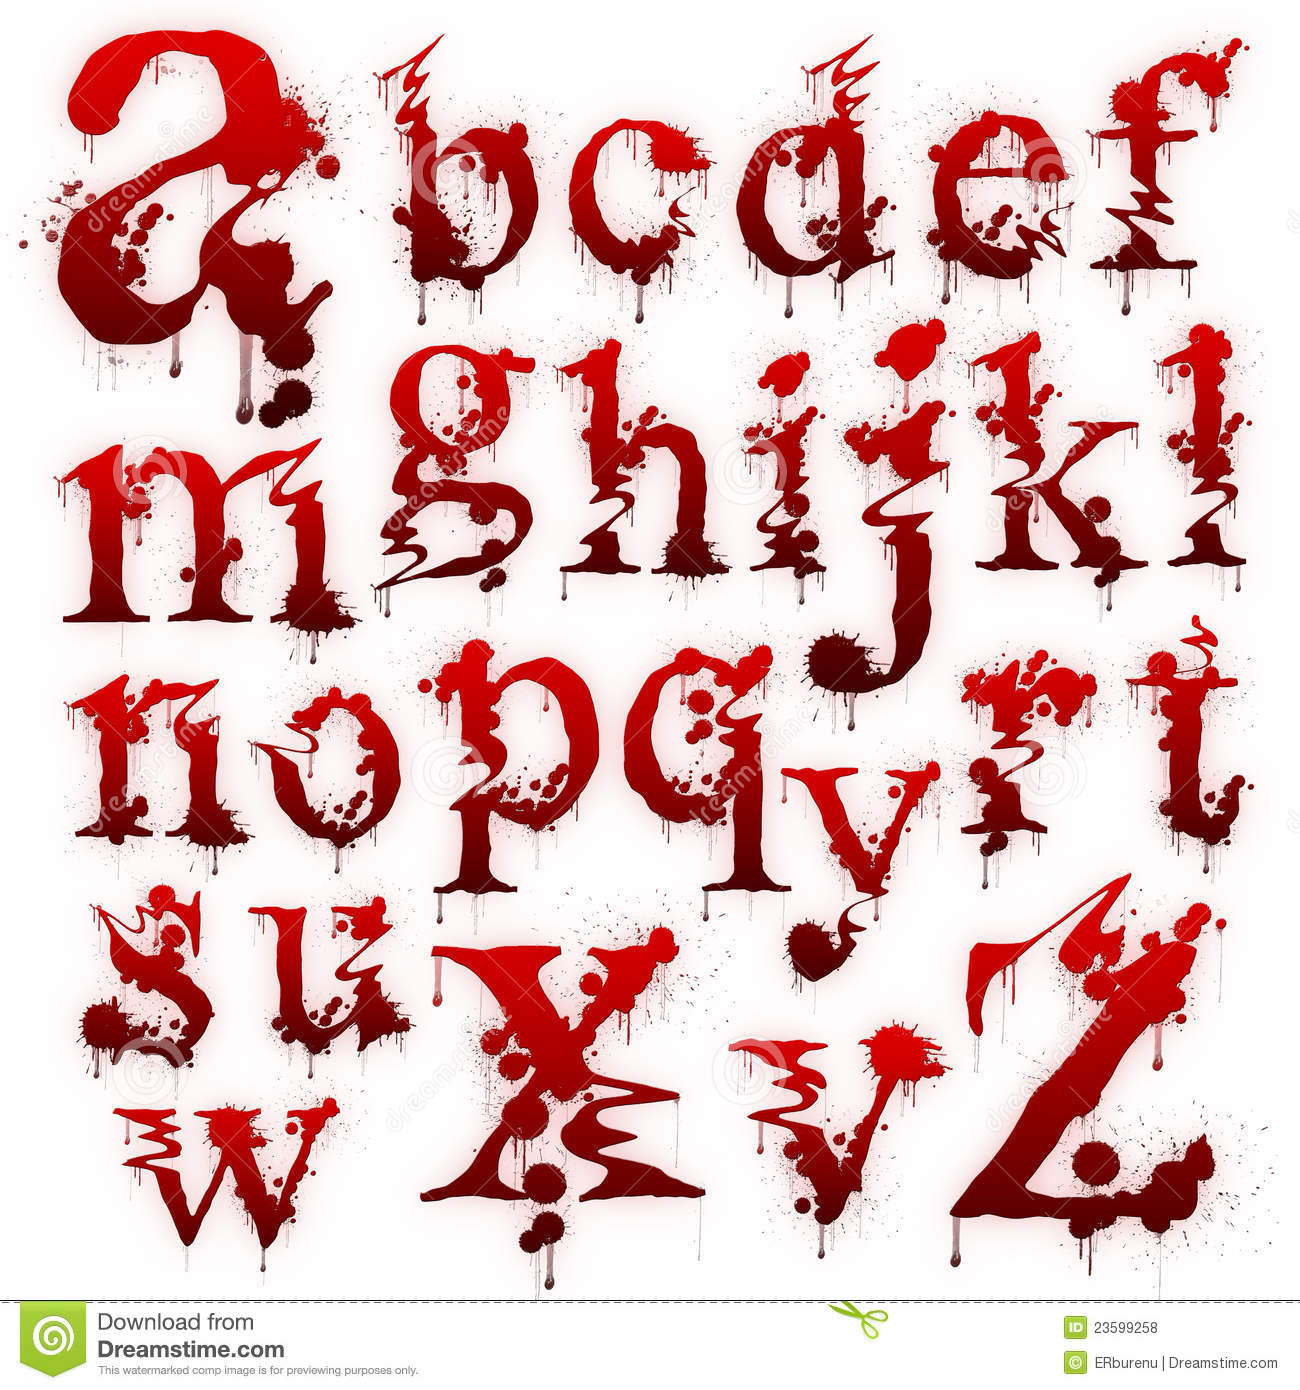 ... Of Bloody Letters Isolated Royalty Free Stock Photos - Image: 23599258